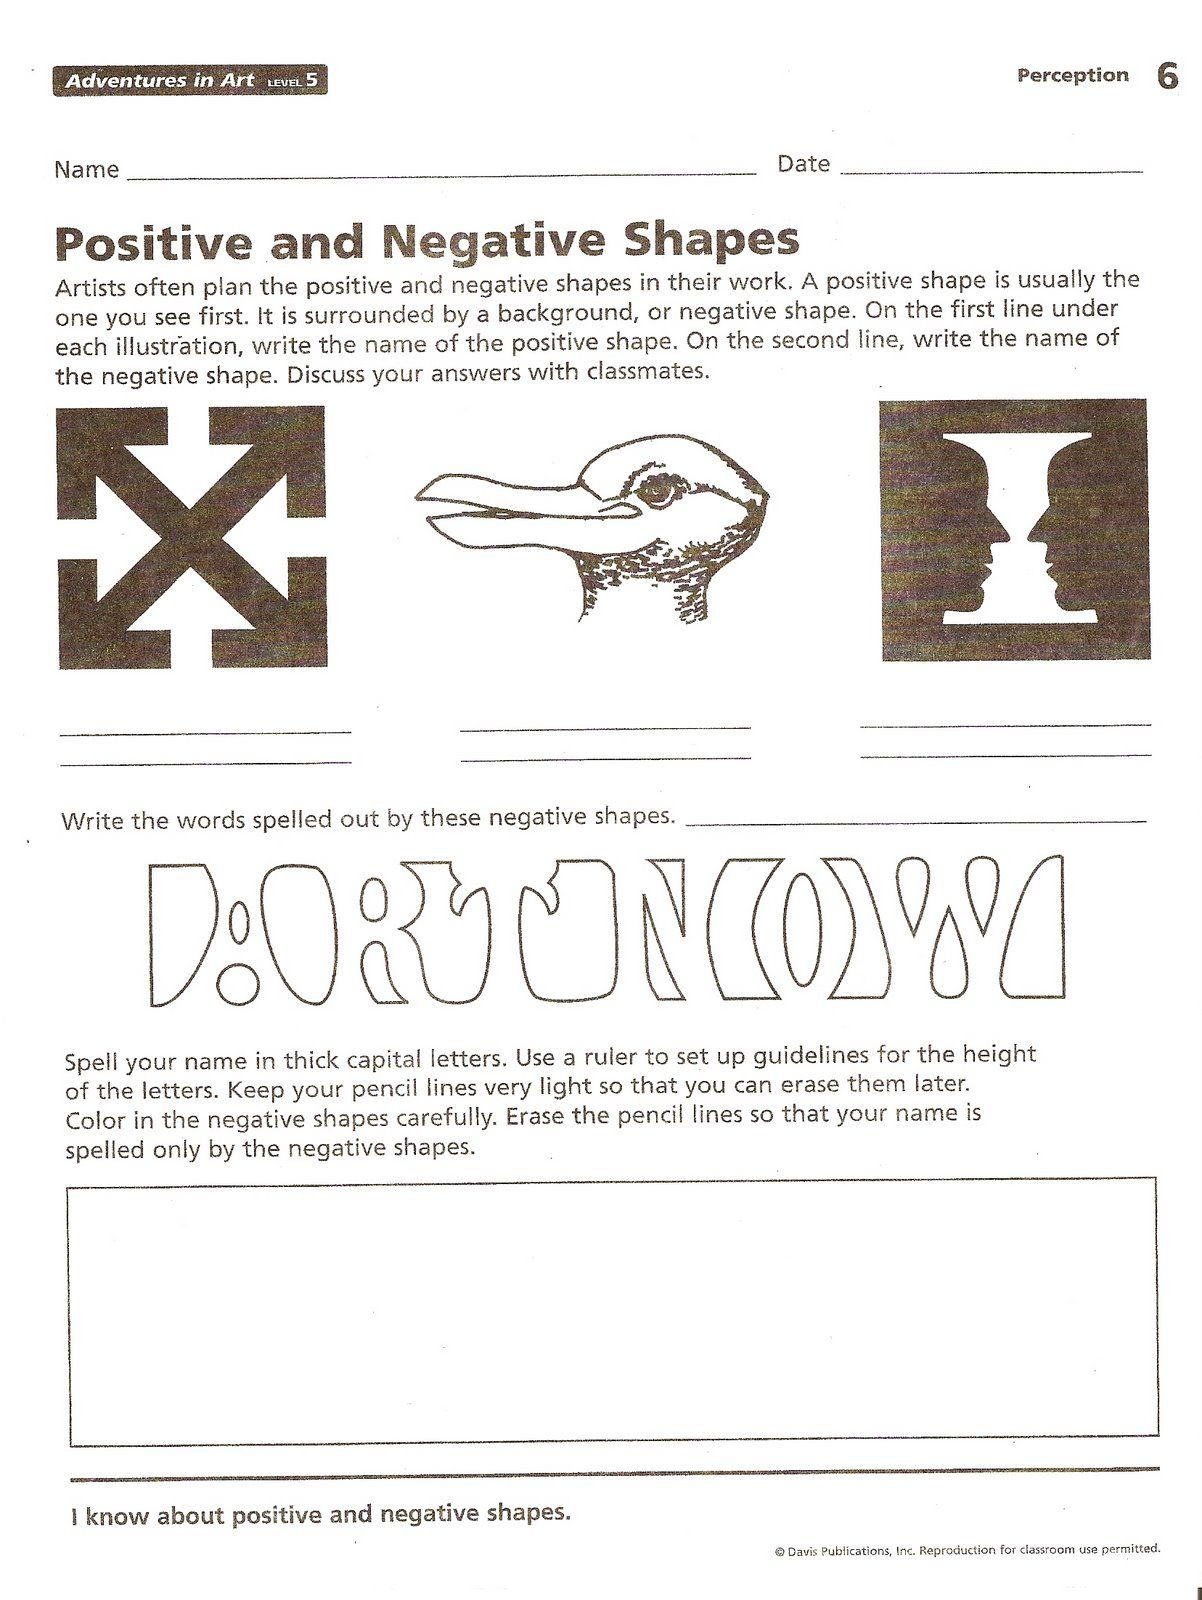 6th Grade Art Worksheets 6th Grade Negative Space Homework Art Lessons Middle